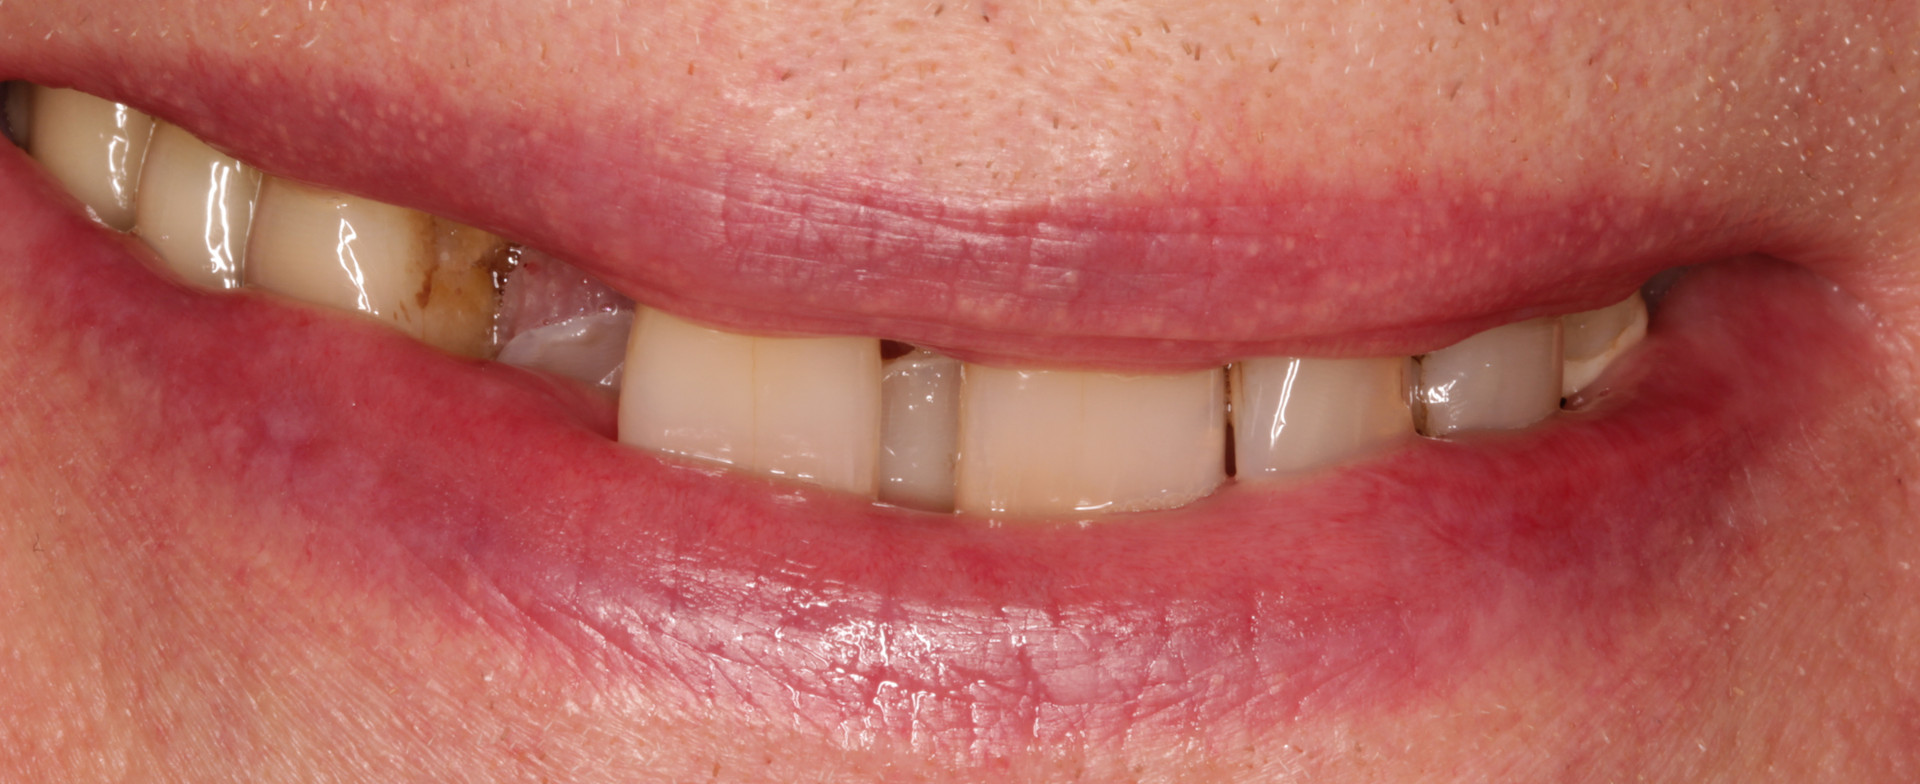 Lateral Incisor Missing